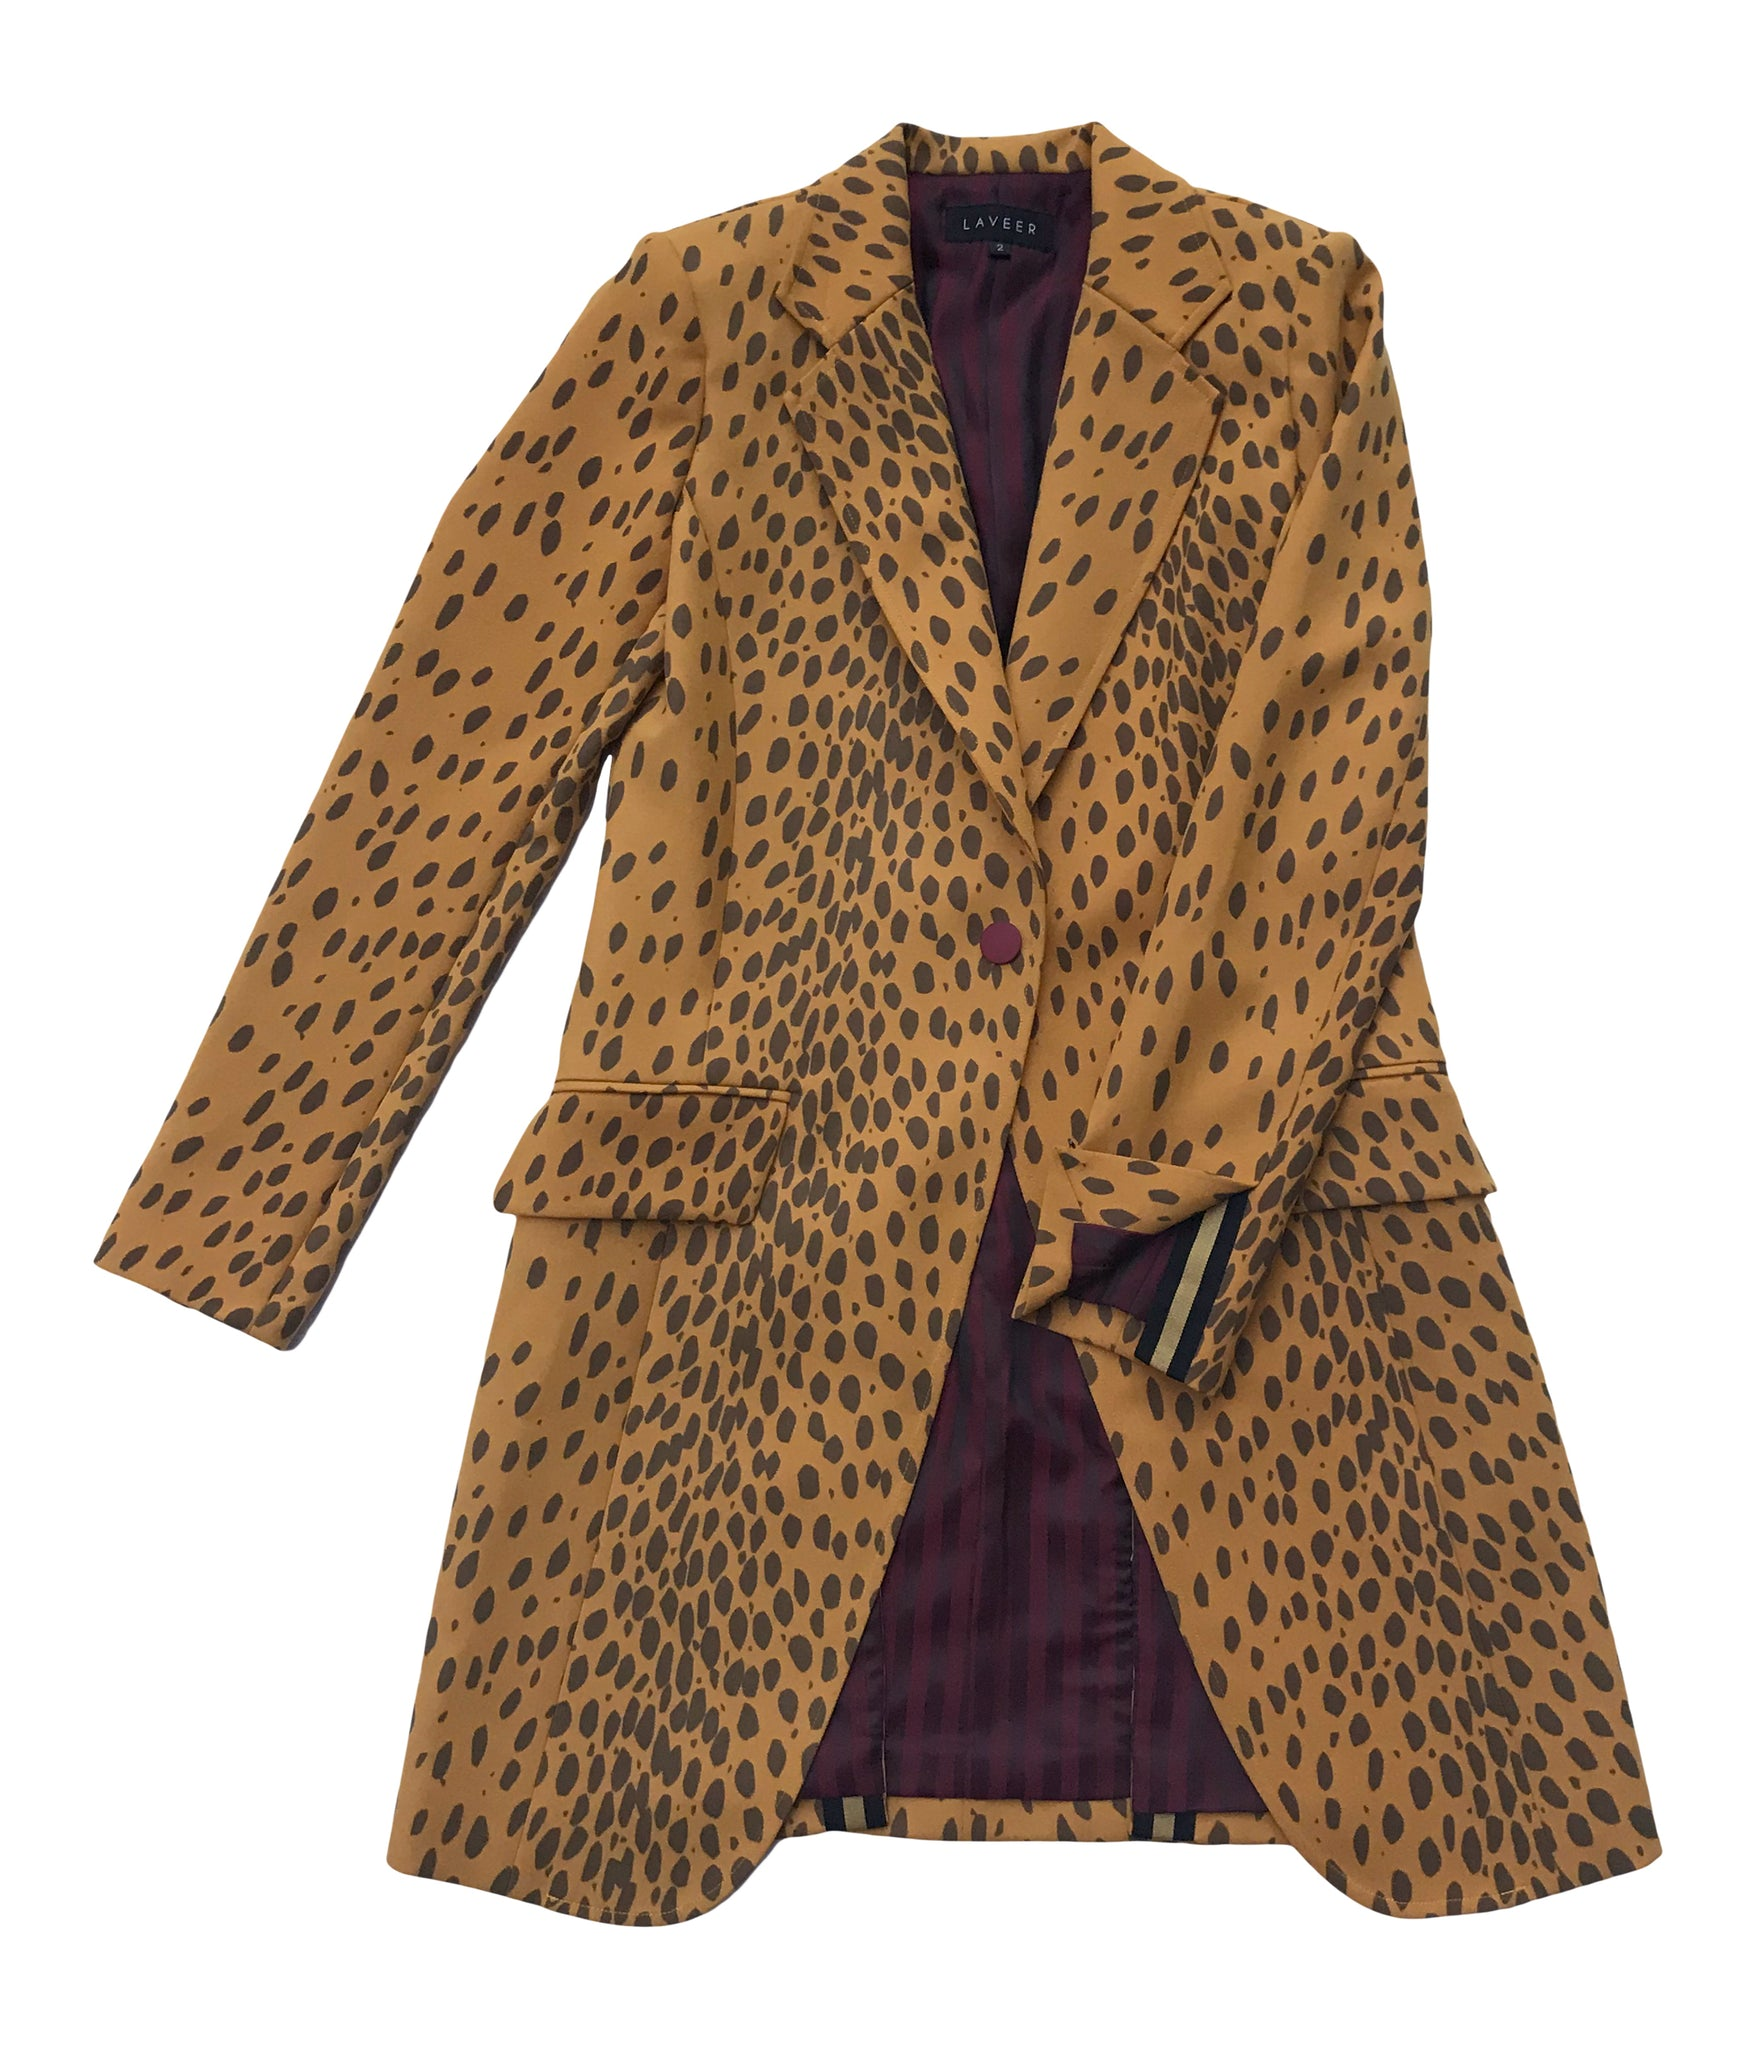 LAVEER SHARP BLAZER IN GOLDEN LEOPARD